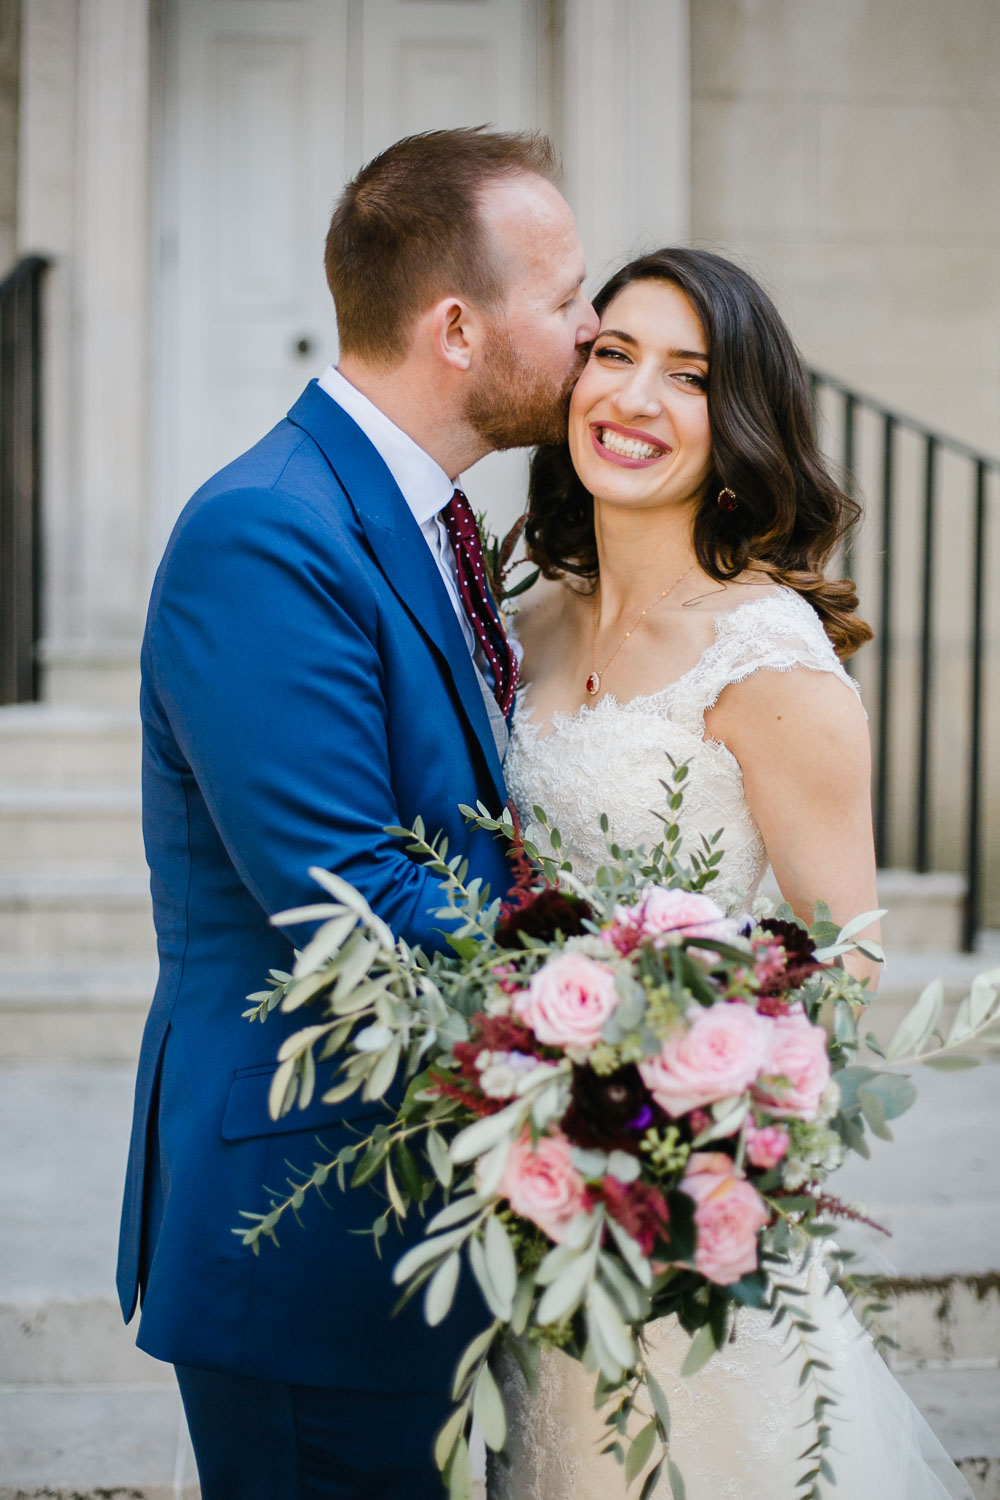 Natural Wedding Photography Bride And Groom Portrait